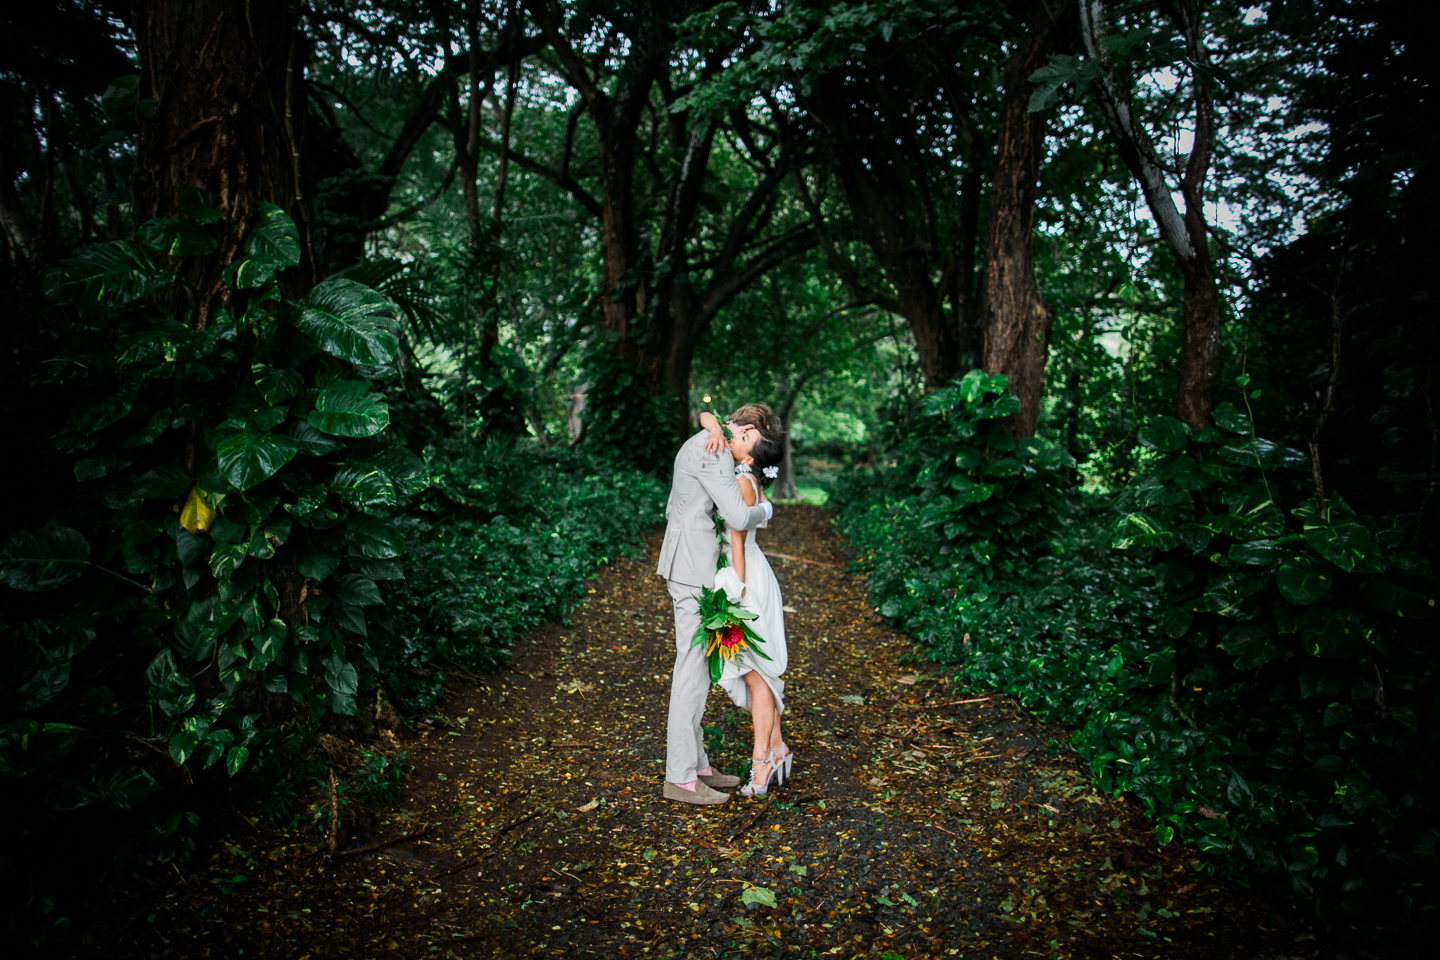 Kualoa_Ranch_Hawaii_wedding.jpg